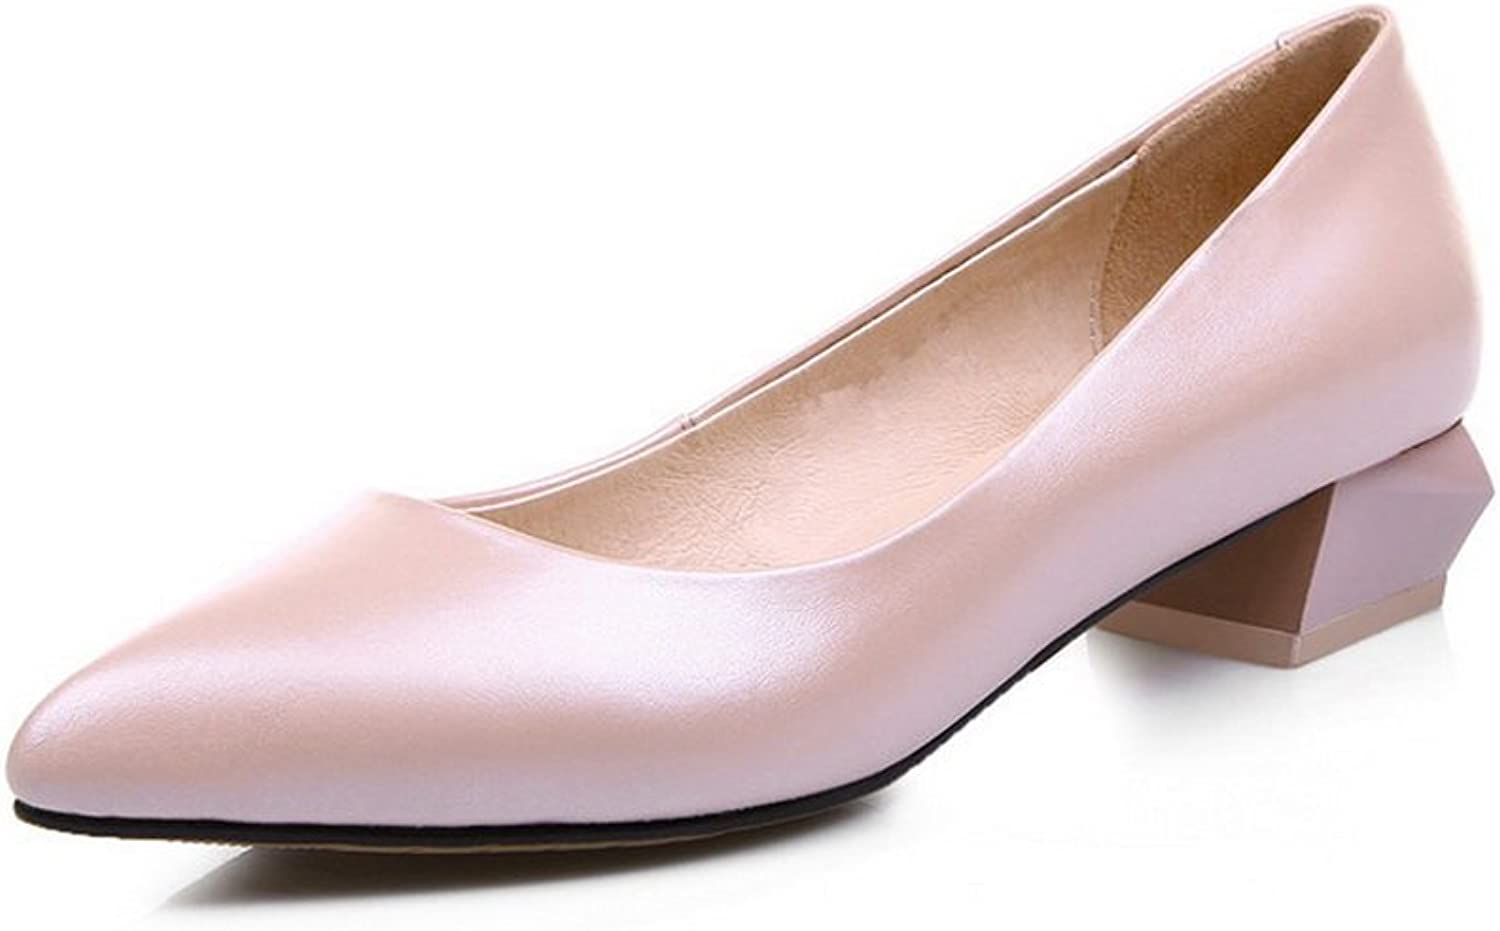 AdeeSu Womens Comfort Pointed-Toe Business Pleather Pumps shoes SDC04335